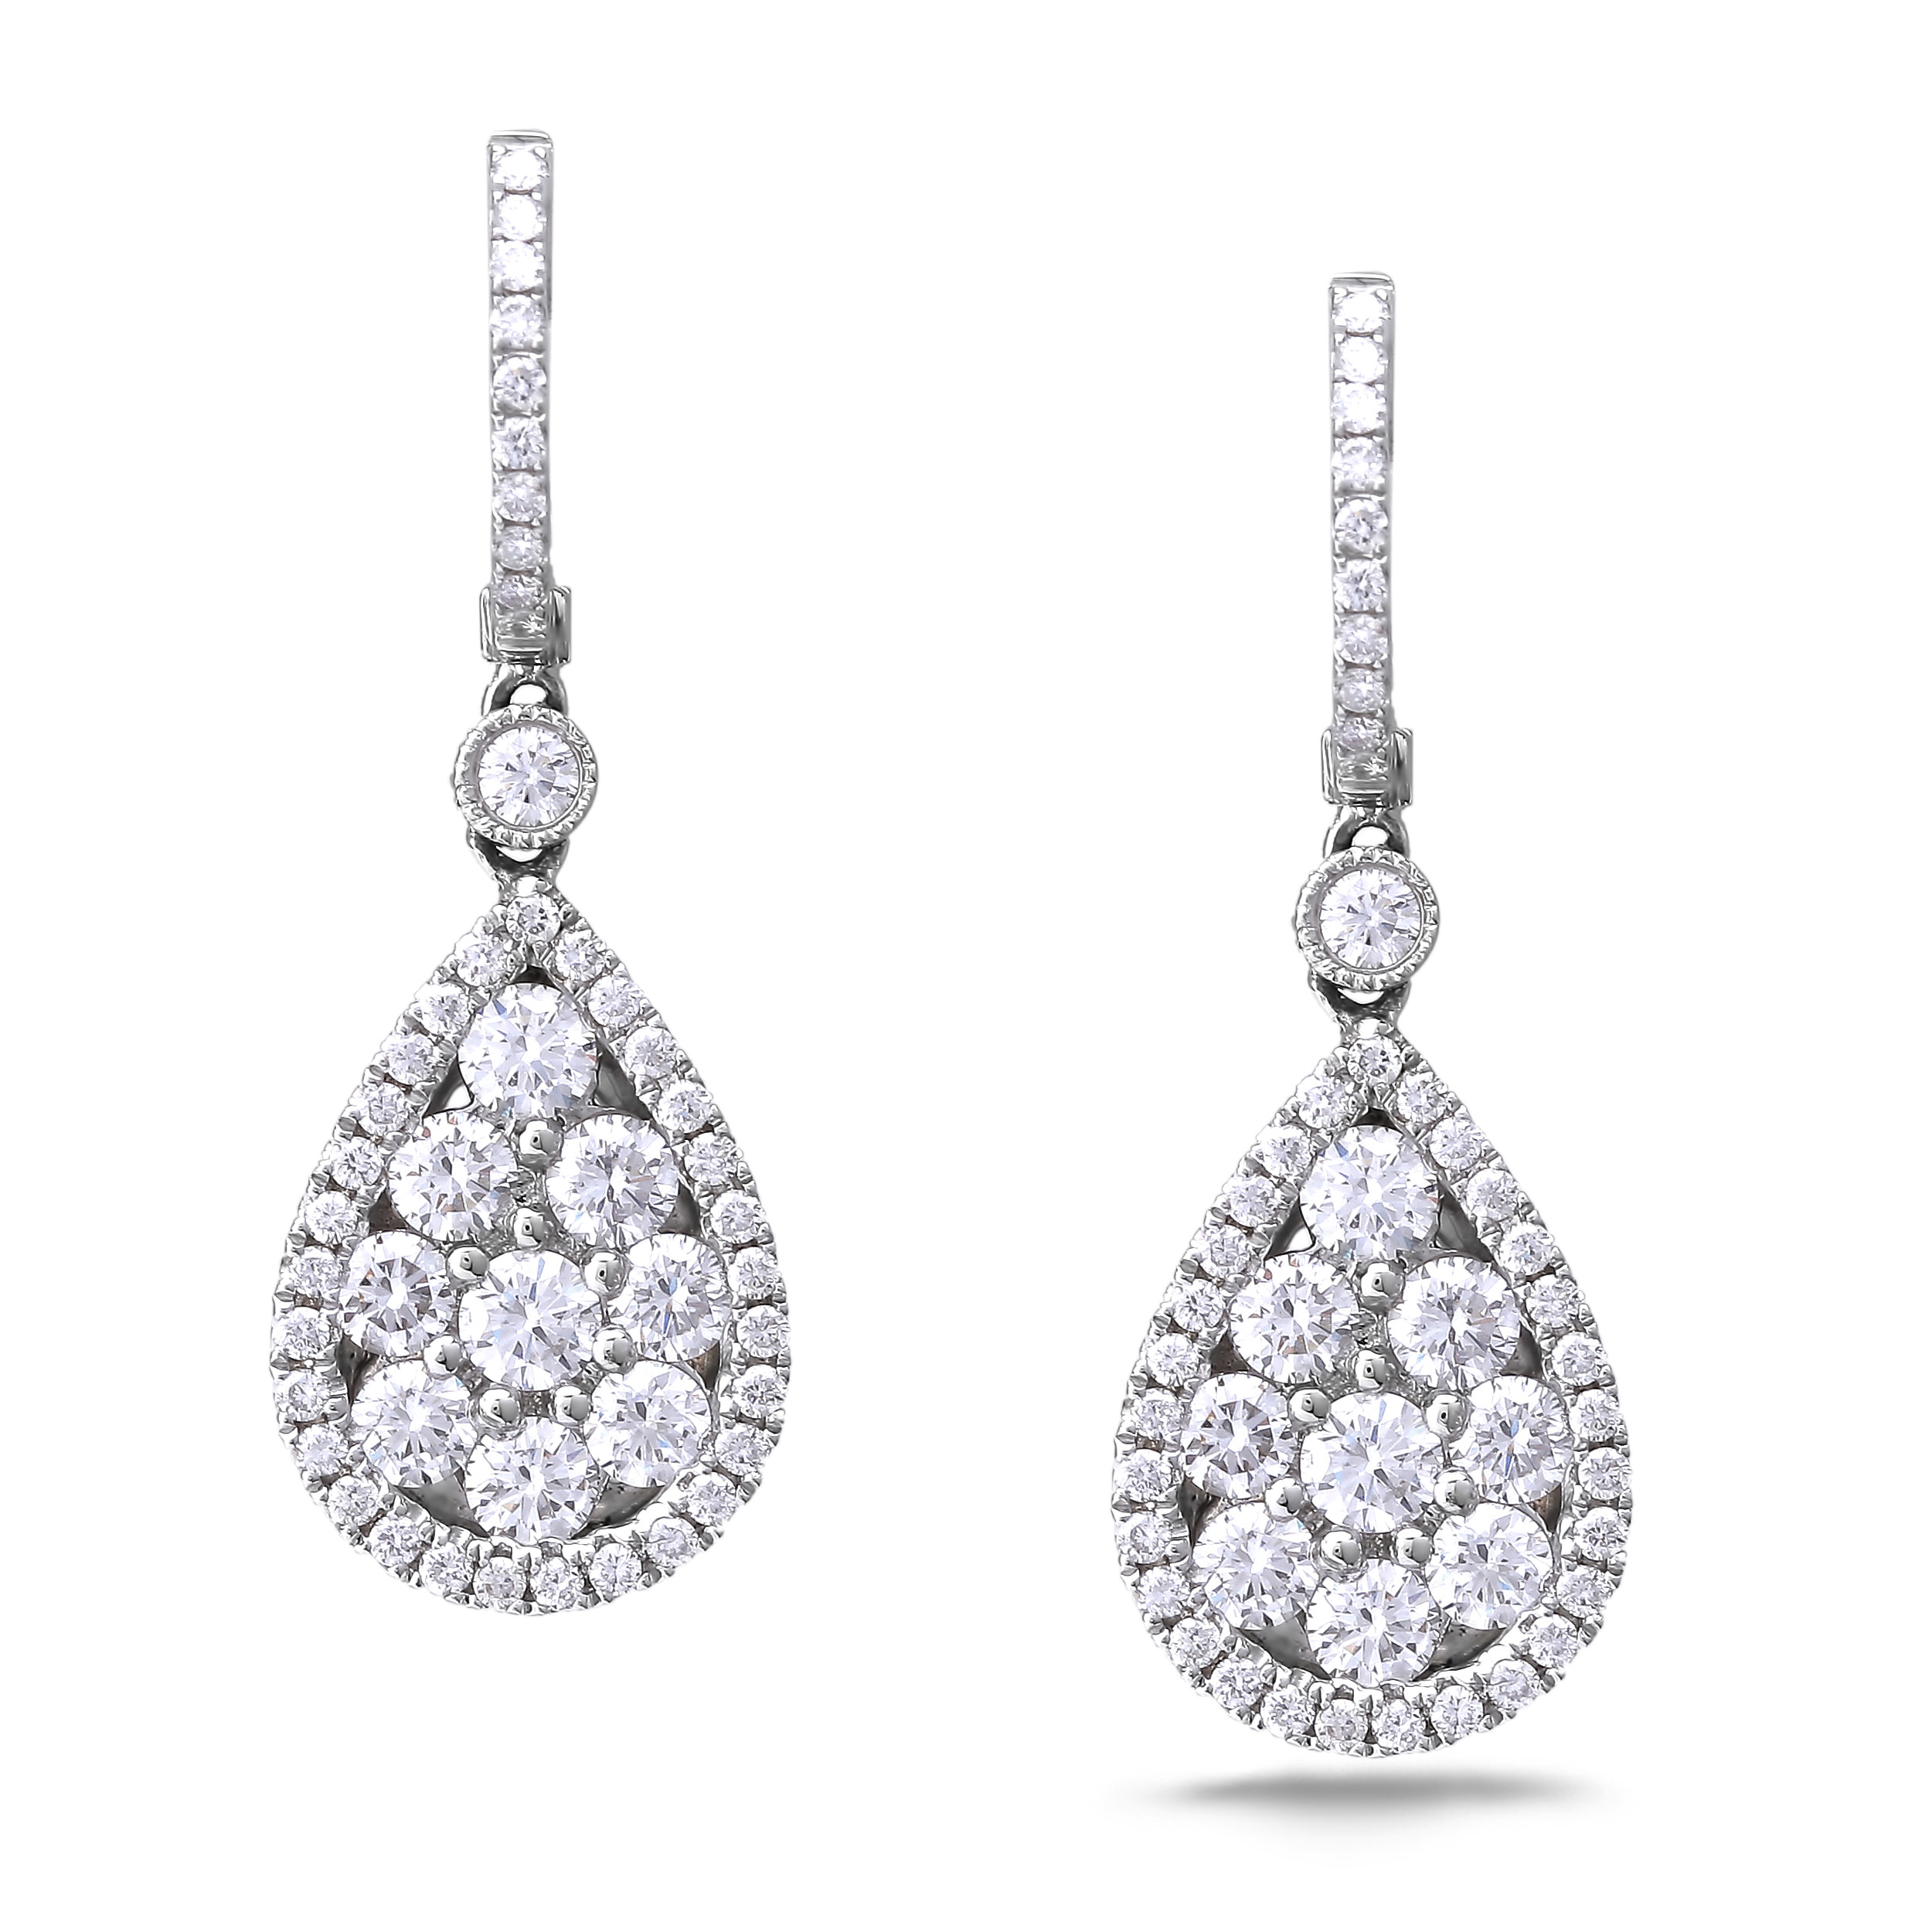 Diamond Dangle Earrings SGE230 (Earrings)